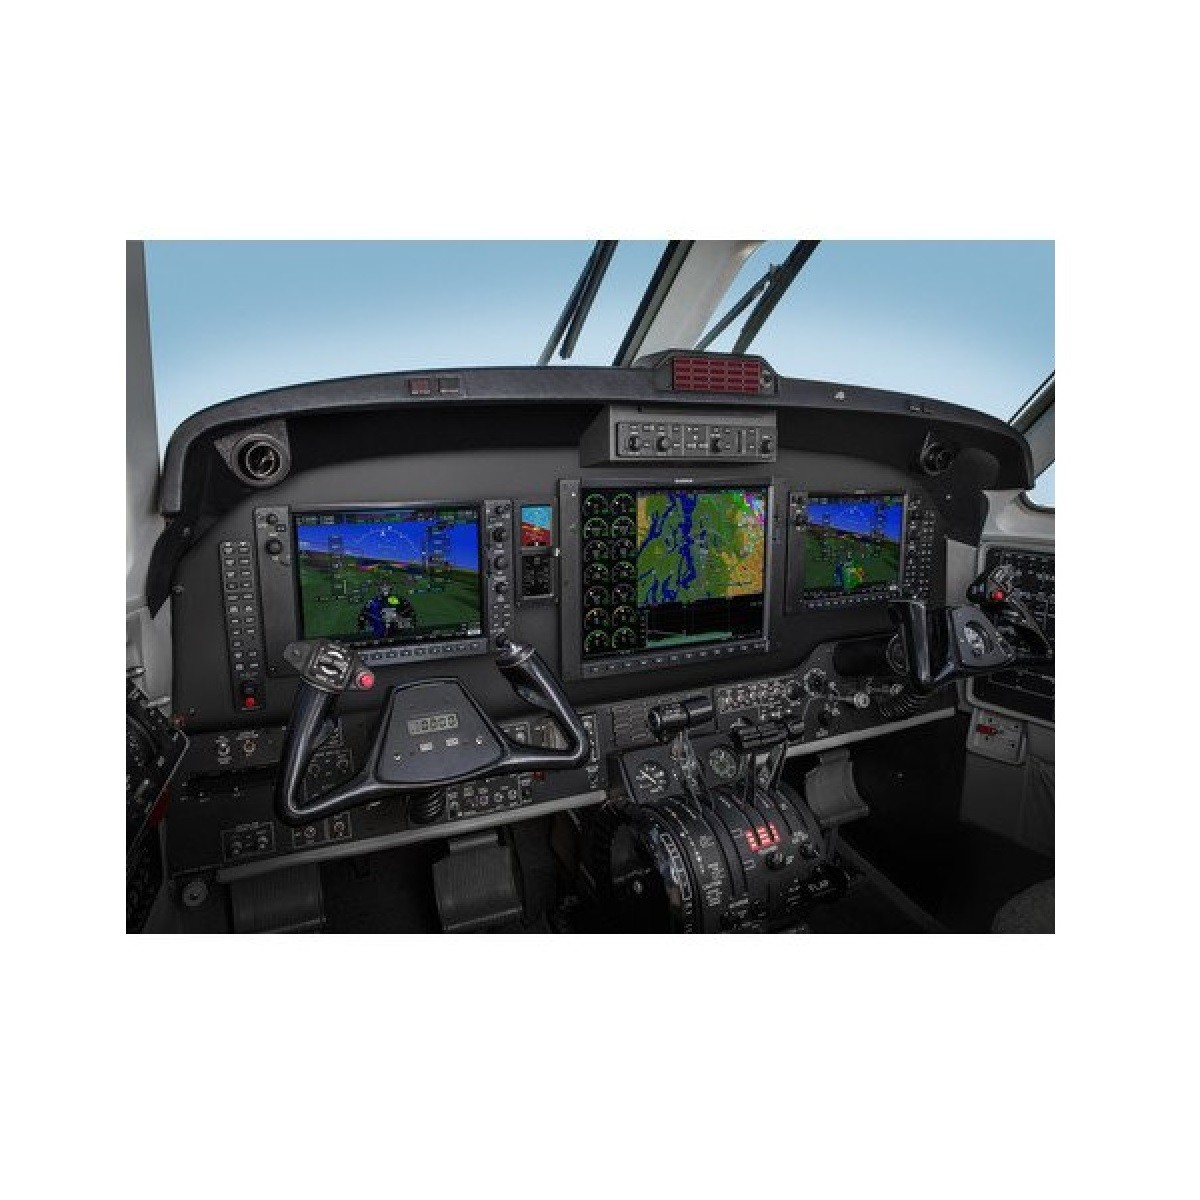 GARMIN G1000 NXI King Air C90/200/300 (G1000NXI-KA)